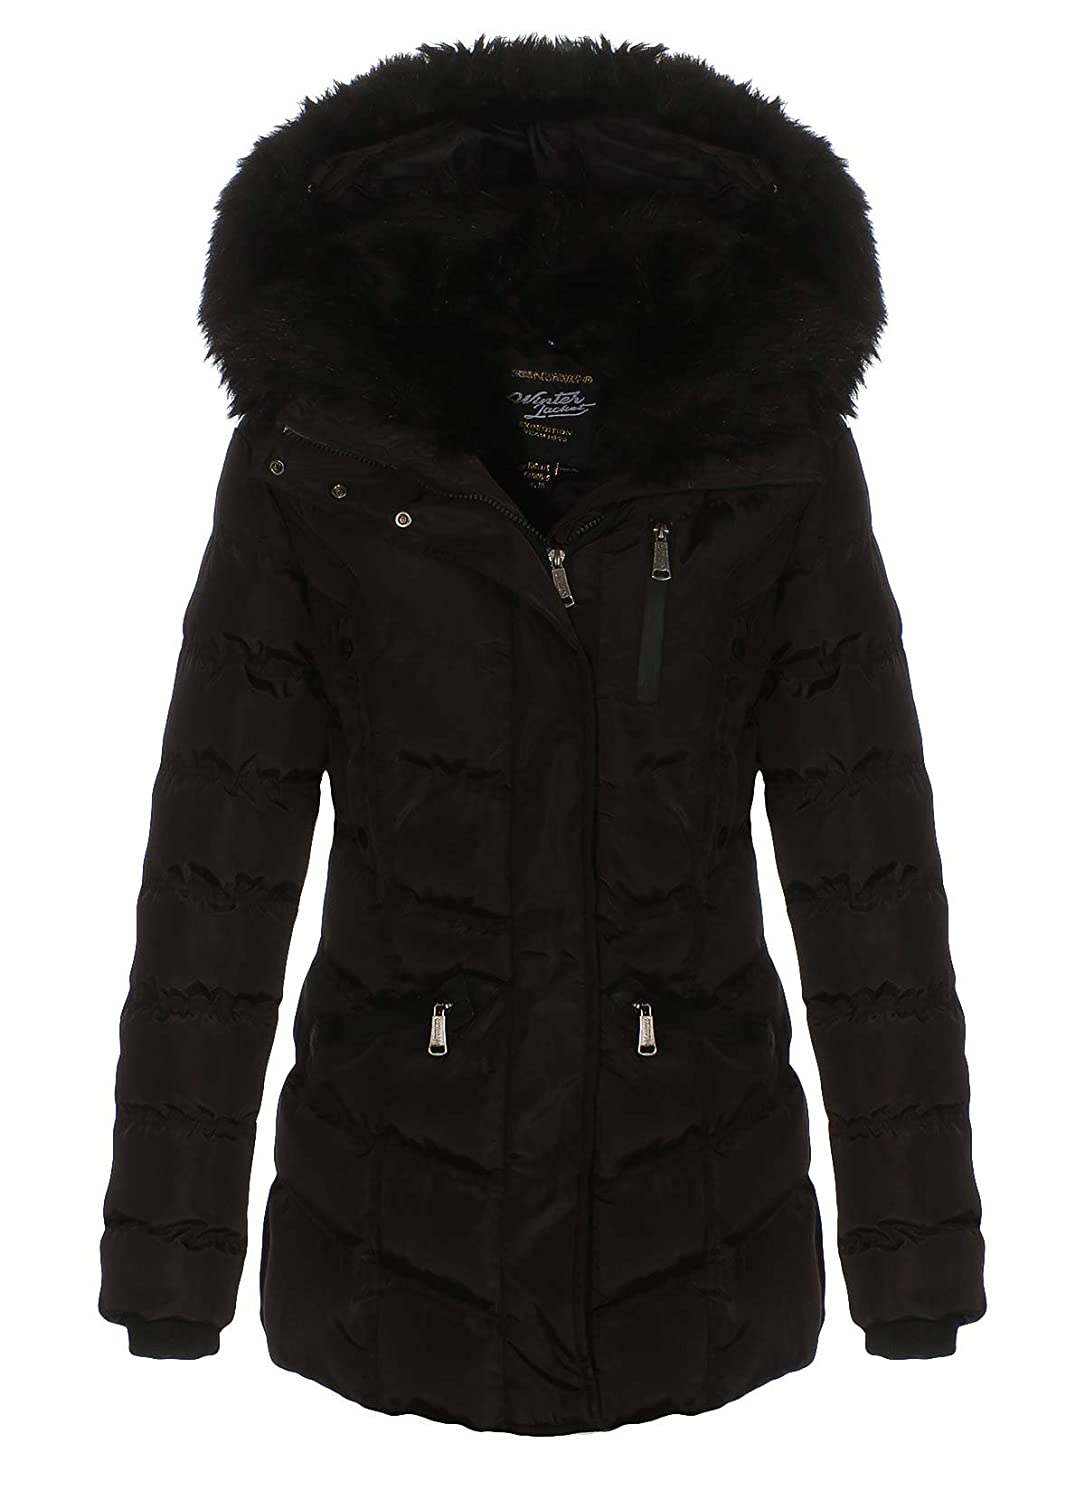 Geographical Norway Doctor Lady Parka d'hiver pour Femme Noir